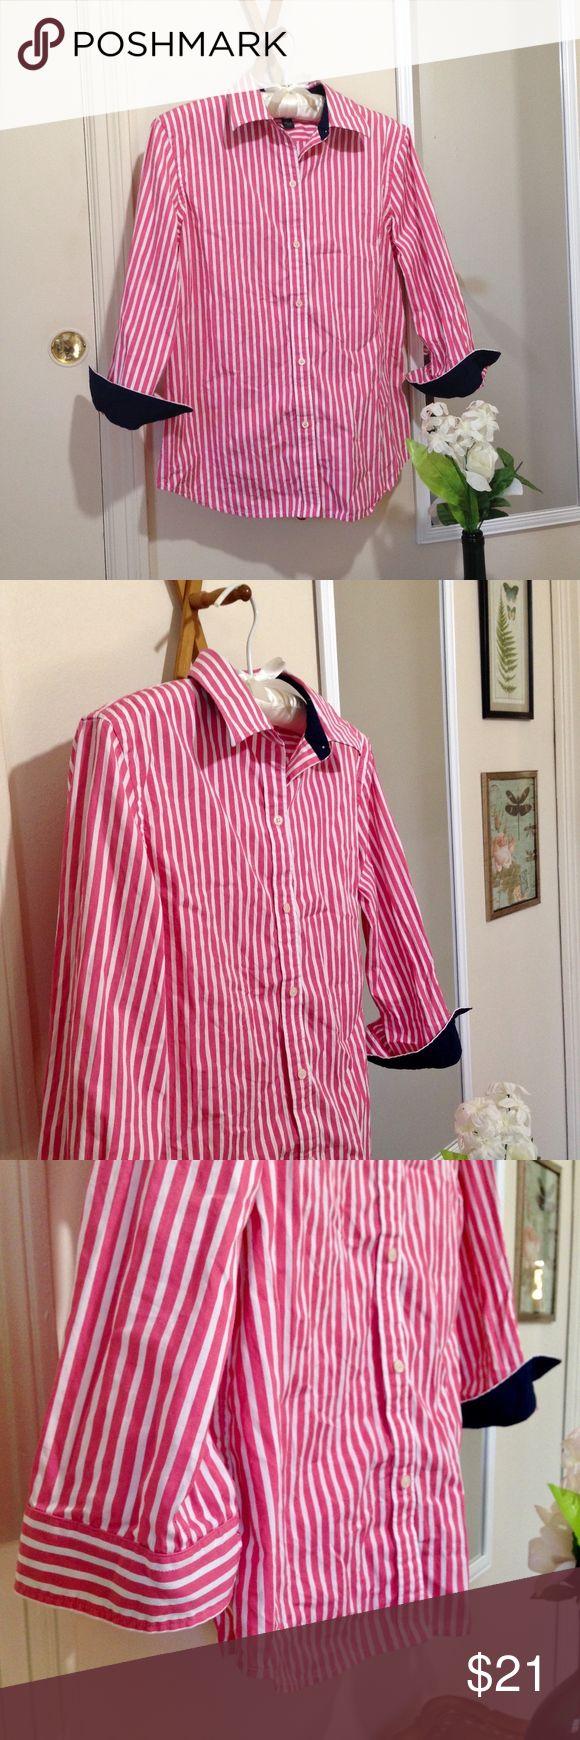 Women's RALPH LAUREN Button Down Size Medium LAUREN Ralph Lauren. Women's button down blouse size medium. Dusty, salmon like pink & white stripe w/ navy blue lining on interior of cuffs & collar. 3/4 length sleeves. Fitted cut. Cotton. Great condition. Lauren Ralph Lauren Tops Button Down Shirts #oxfordwomens